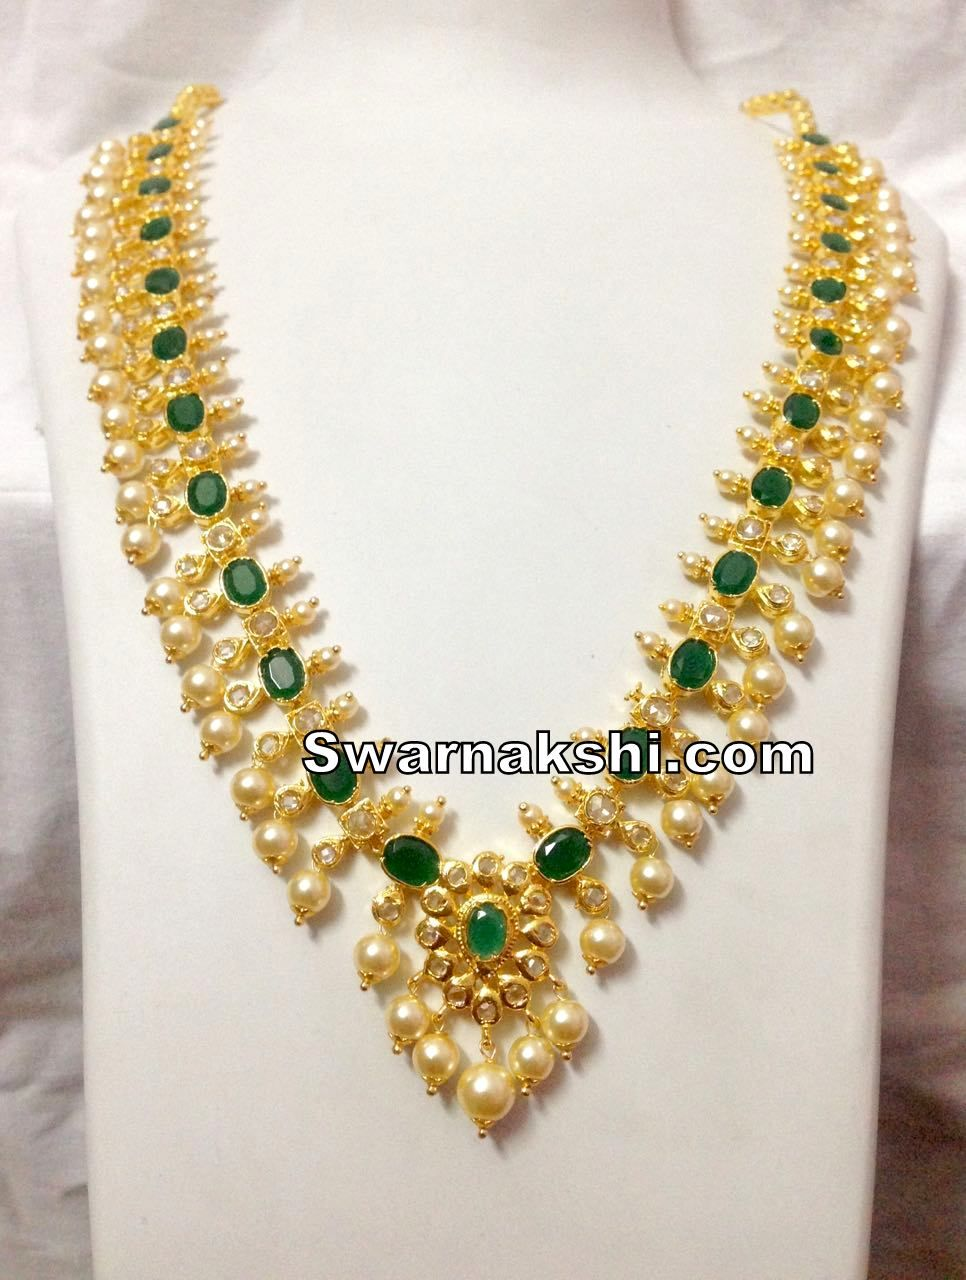 9b57843f09c 1 gram gold long necklace cz emerald oval stone model buy online in ...